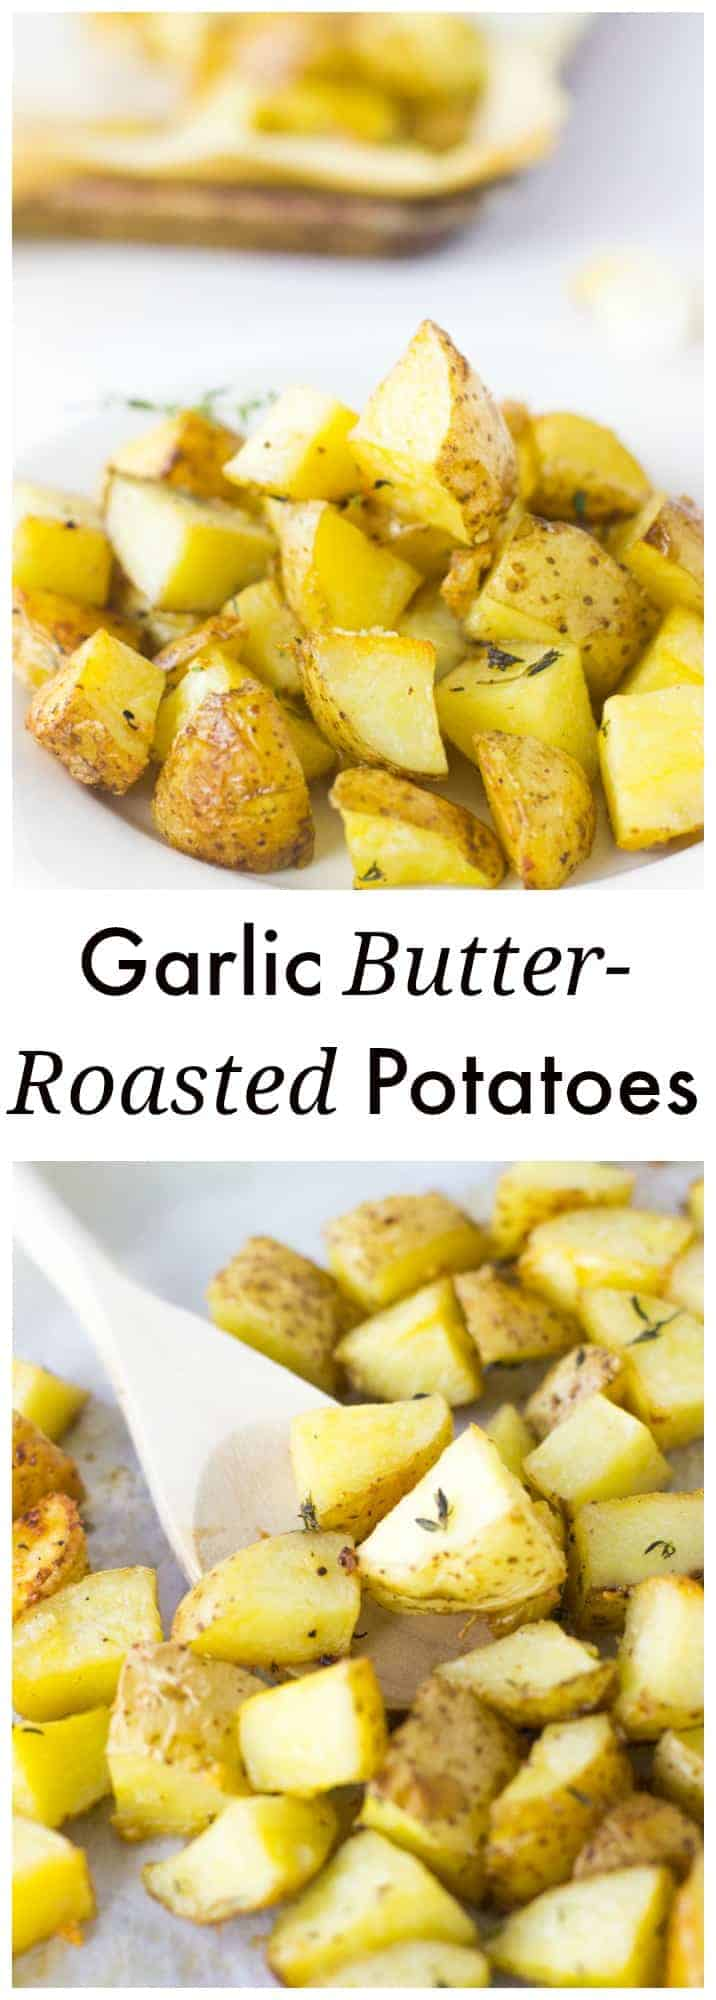 These Garlic Butter Roasted Potatoes make a quick and easy last minute side dish in under 30 minutes. They are light, taste deliciously crispy and buttery!